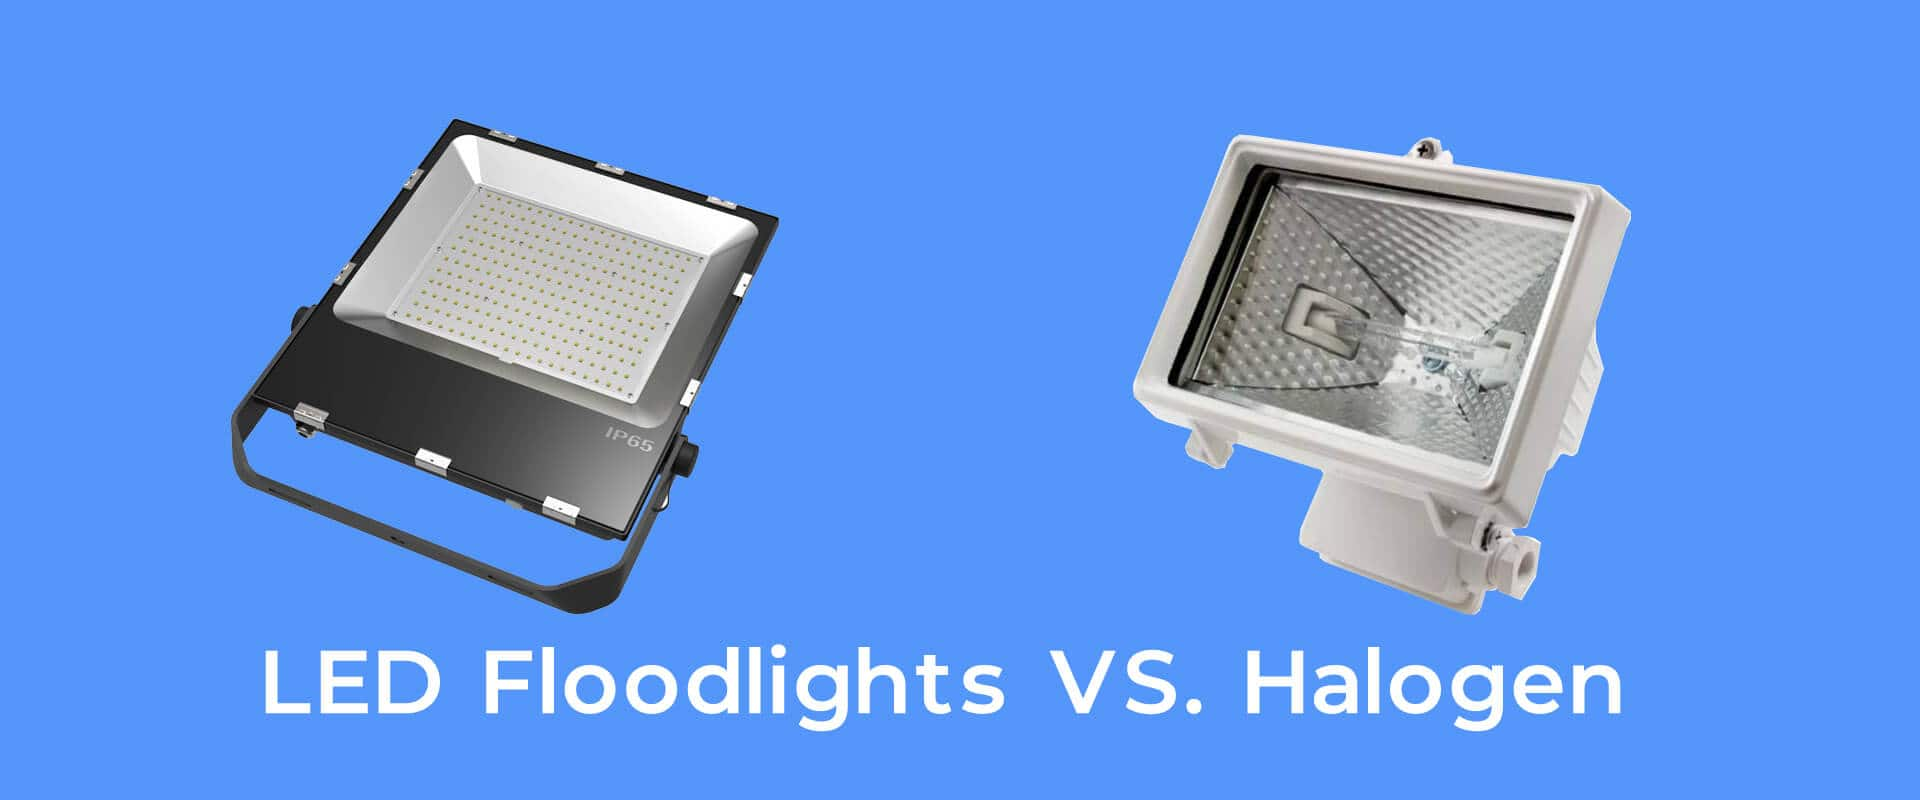 LED Floodlights VS. Halogen